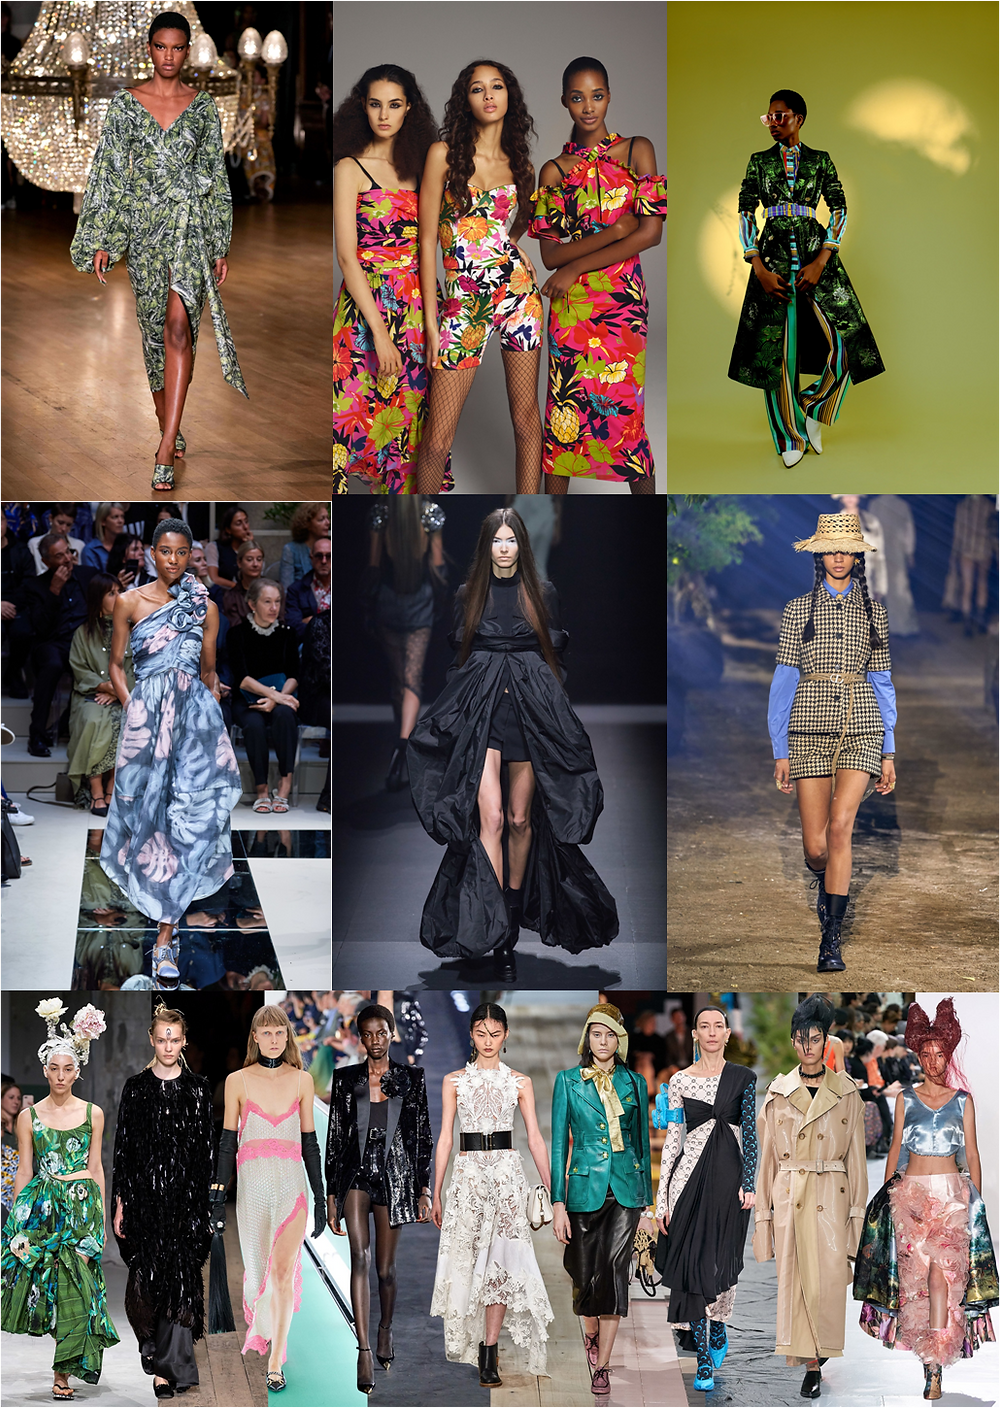 fashion trends for spring summer 2020